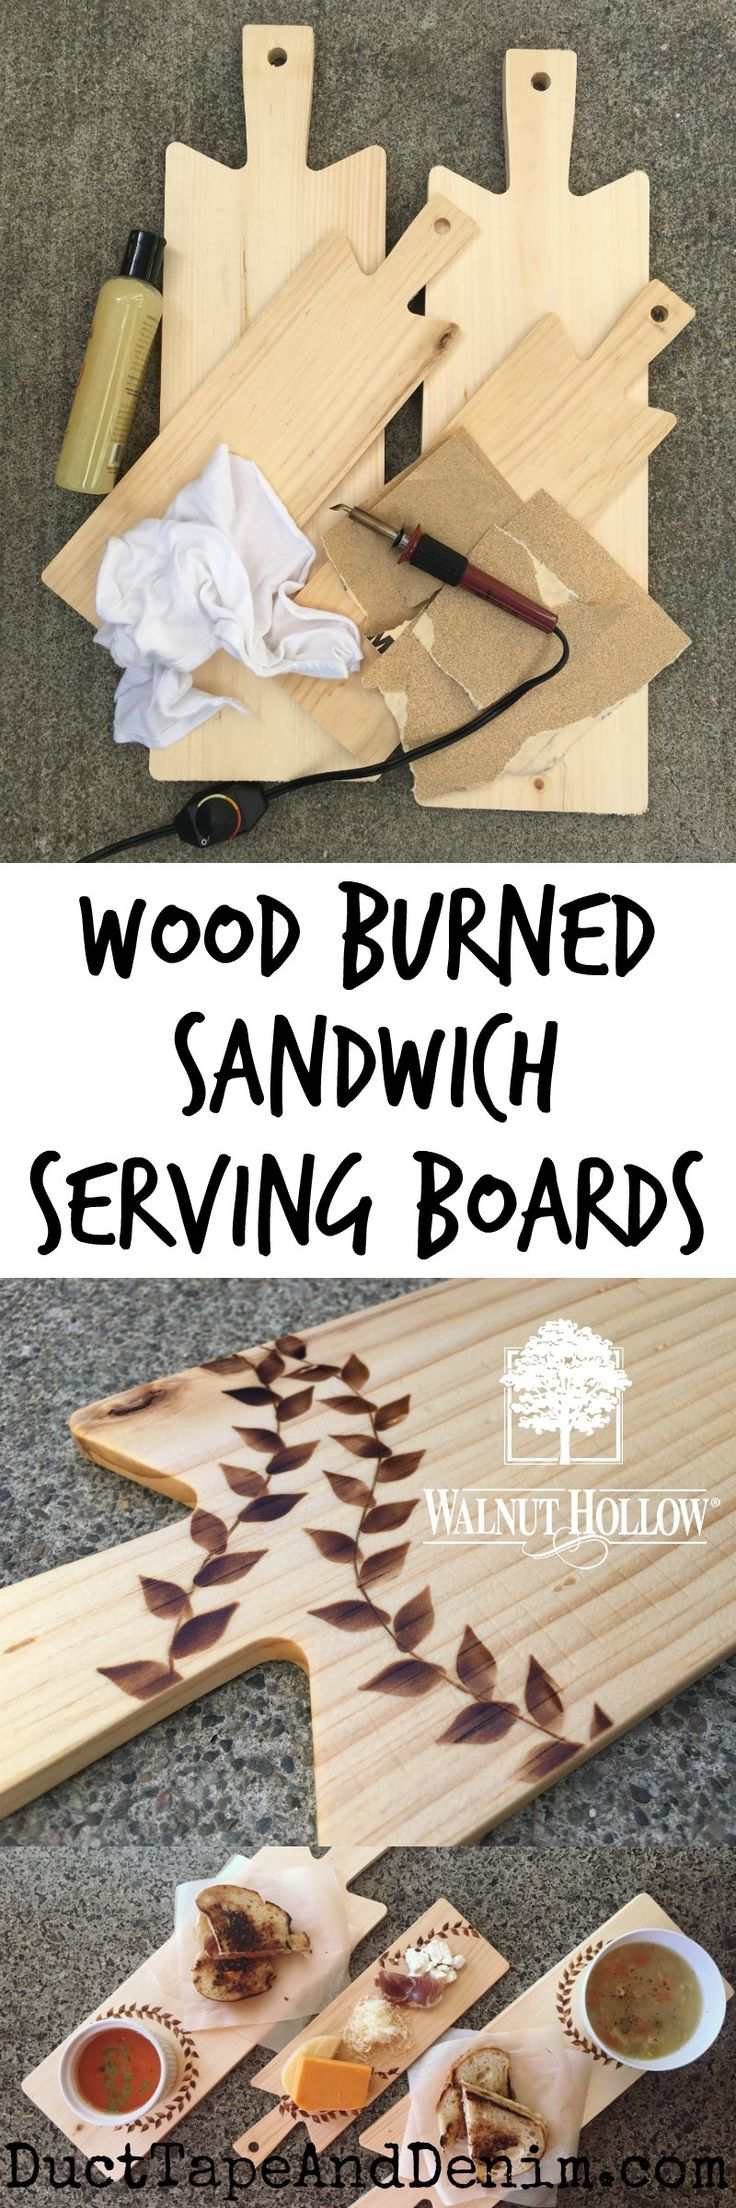 DIY Wood Burned Sandwich Serving Boards by Walnut Hollow